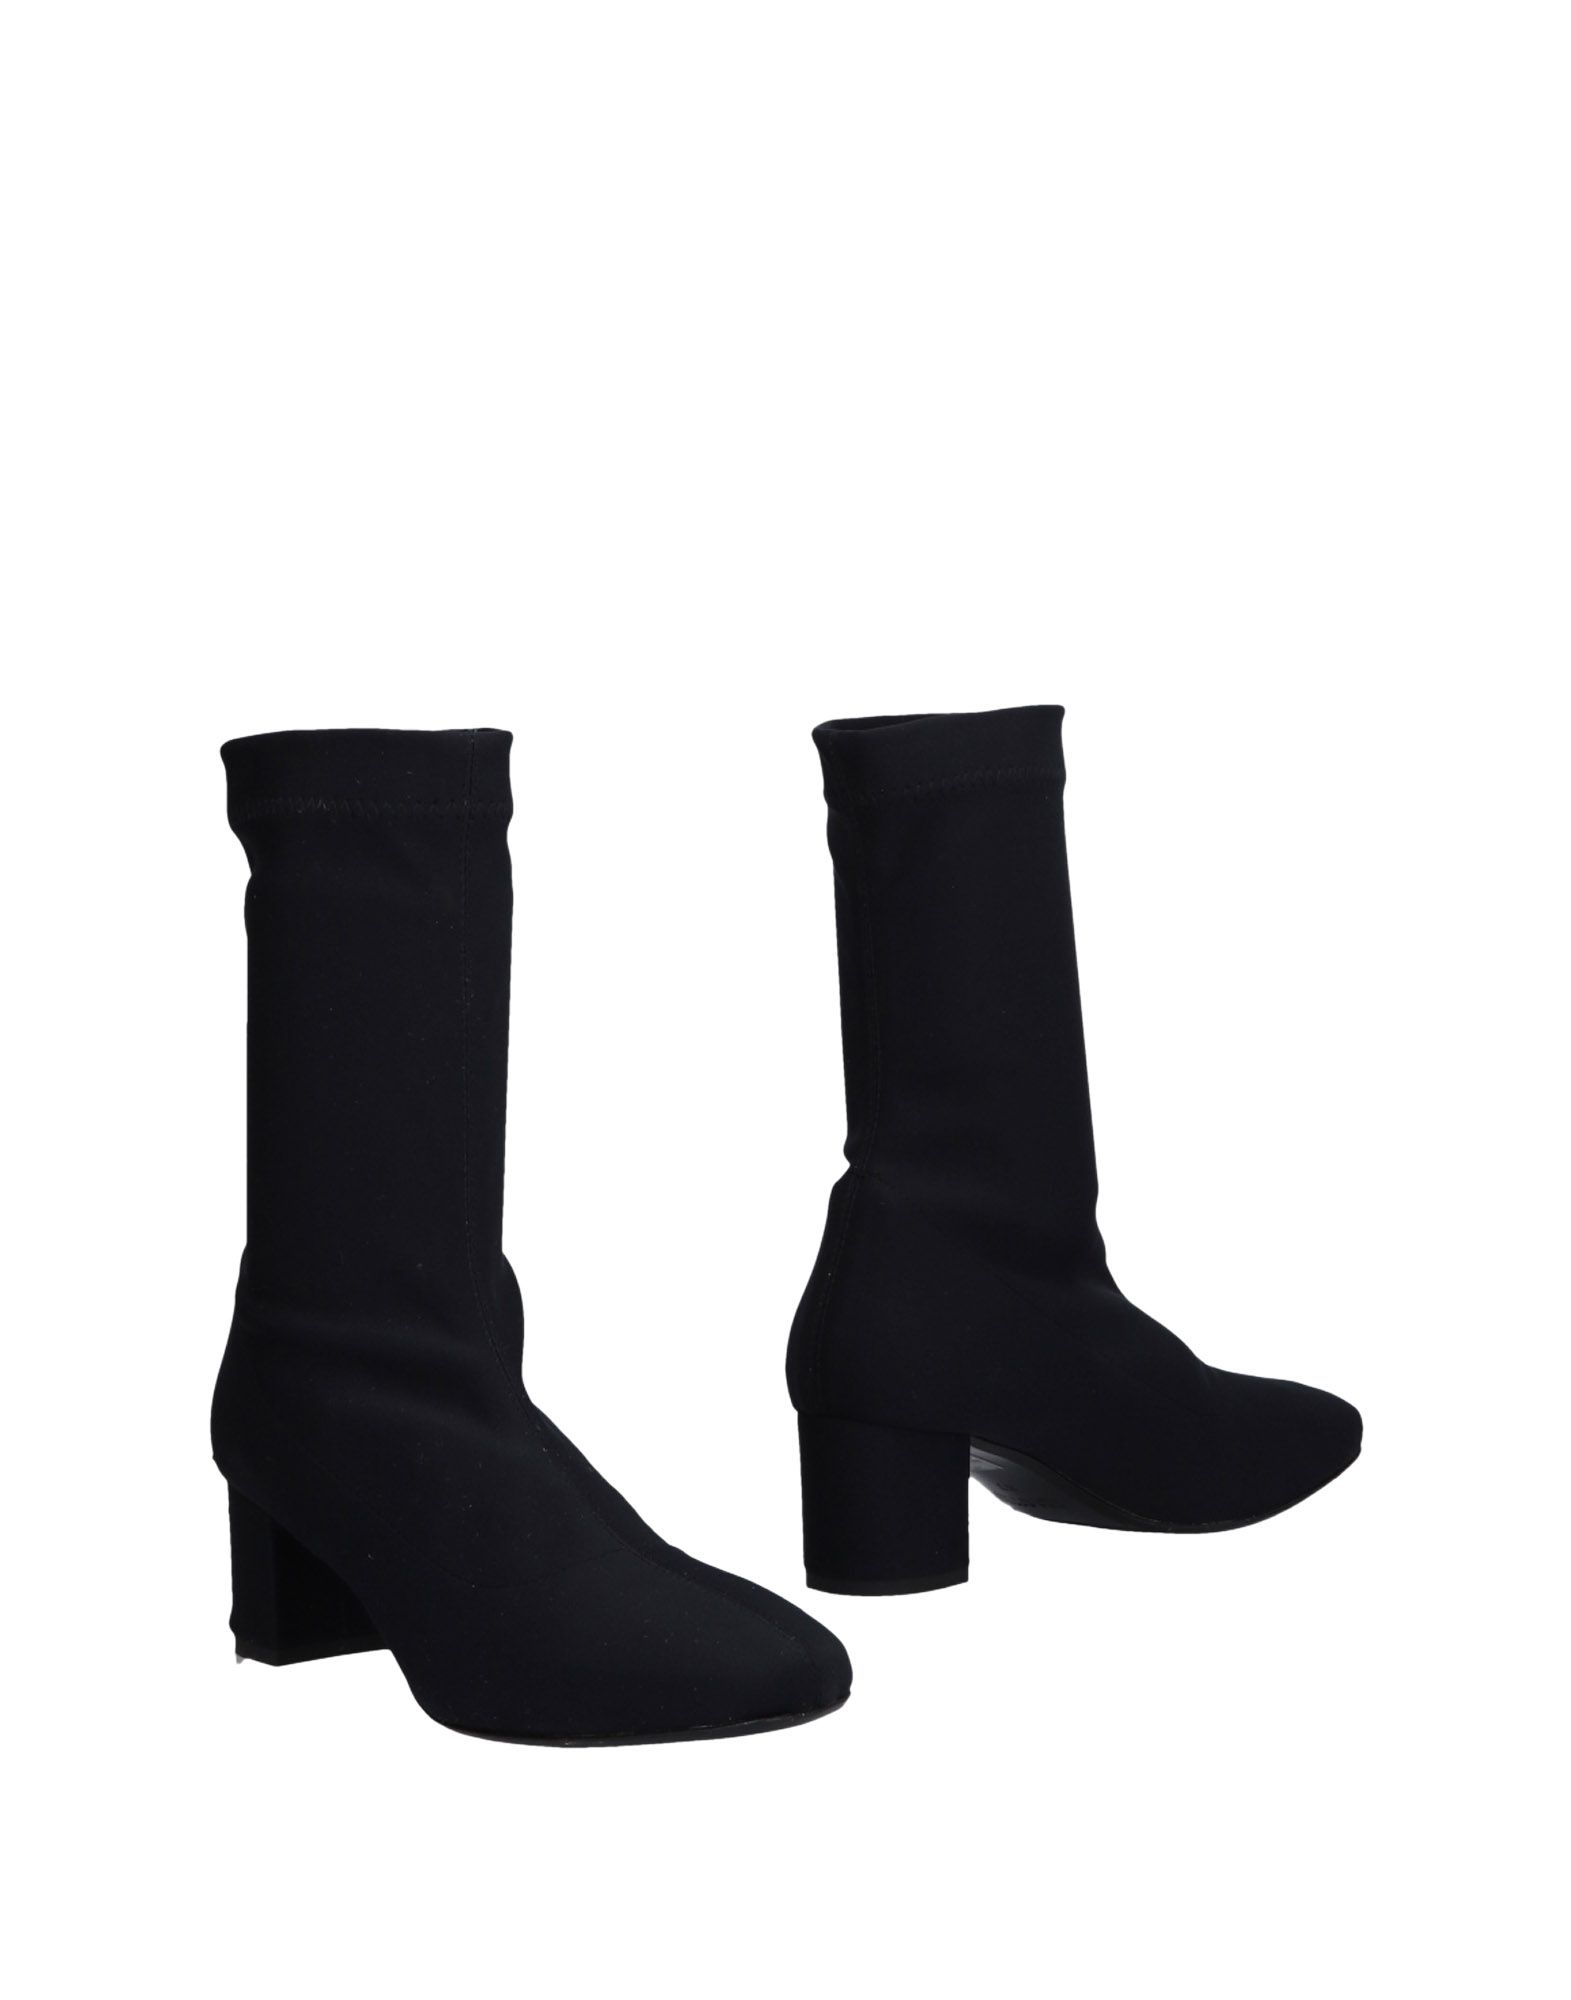 FOOTWEAR - Ankle boots on YOOX.COM Twiggy